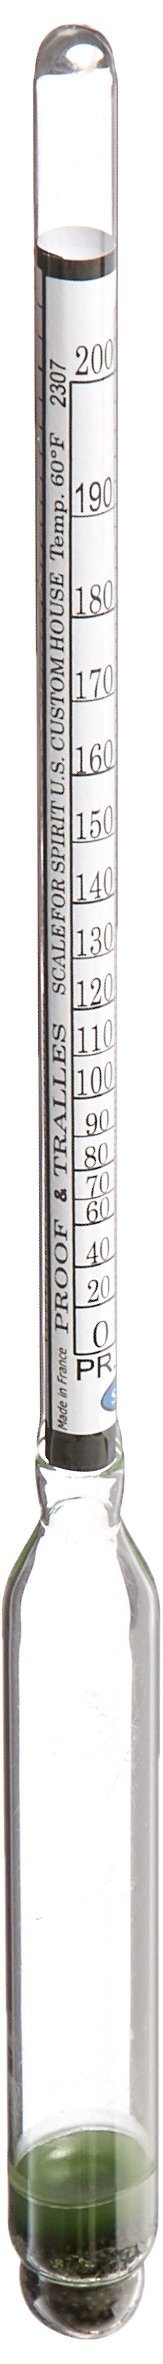 cnsdistributing 6809 Proof and Tralle or% Alcohol Hydrometer Alcoholmeter Spiritometer for Moonshine Still, Spirits, Distilled